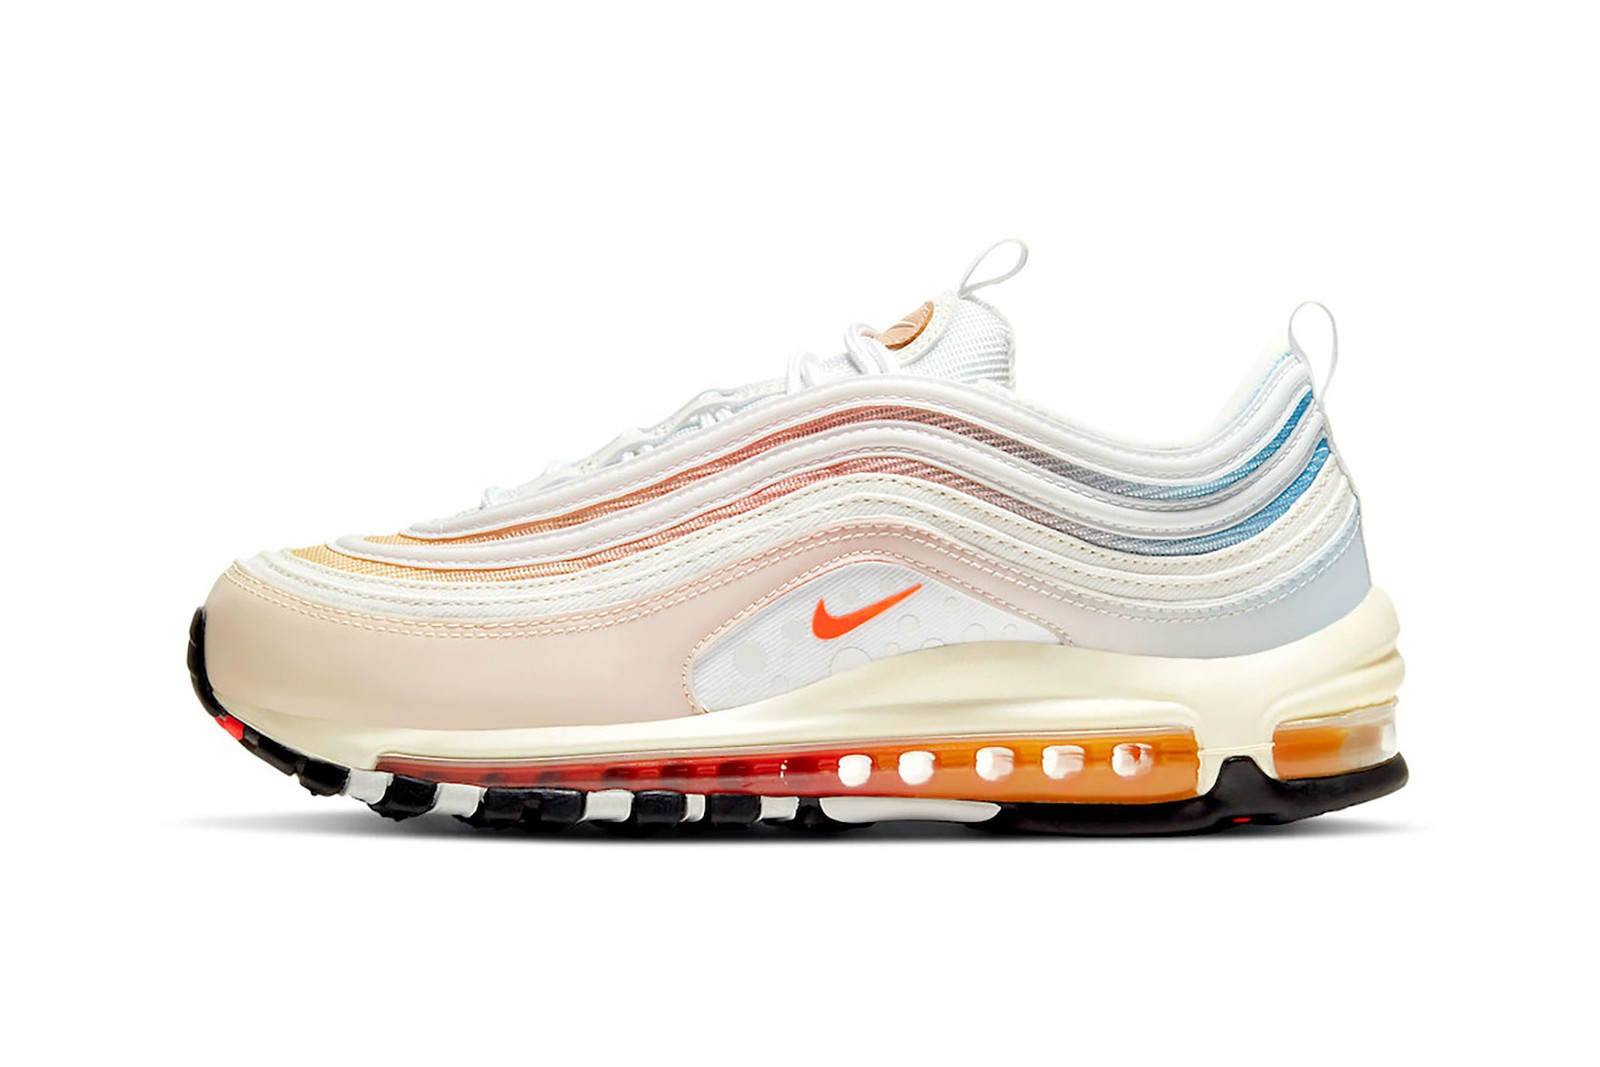 Nike Air Max 97 The Future Is In the Air White Pink Pastel Blue PUMA Hedra Fantasy Womens Sneakers Footwear Shoes